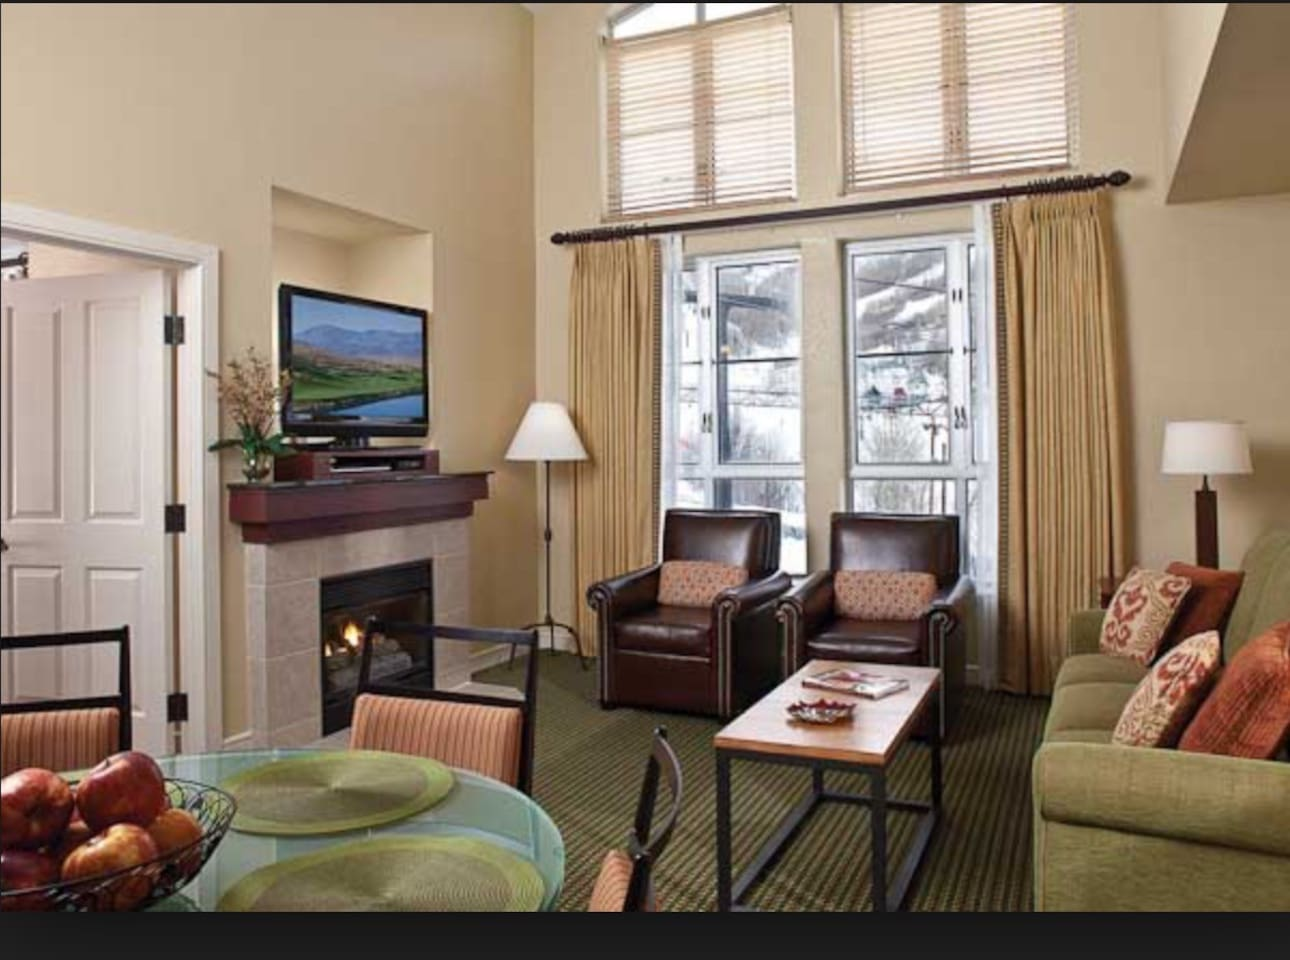 living Room with fireplace and view of the resort